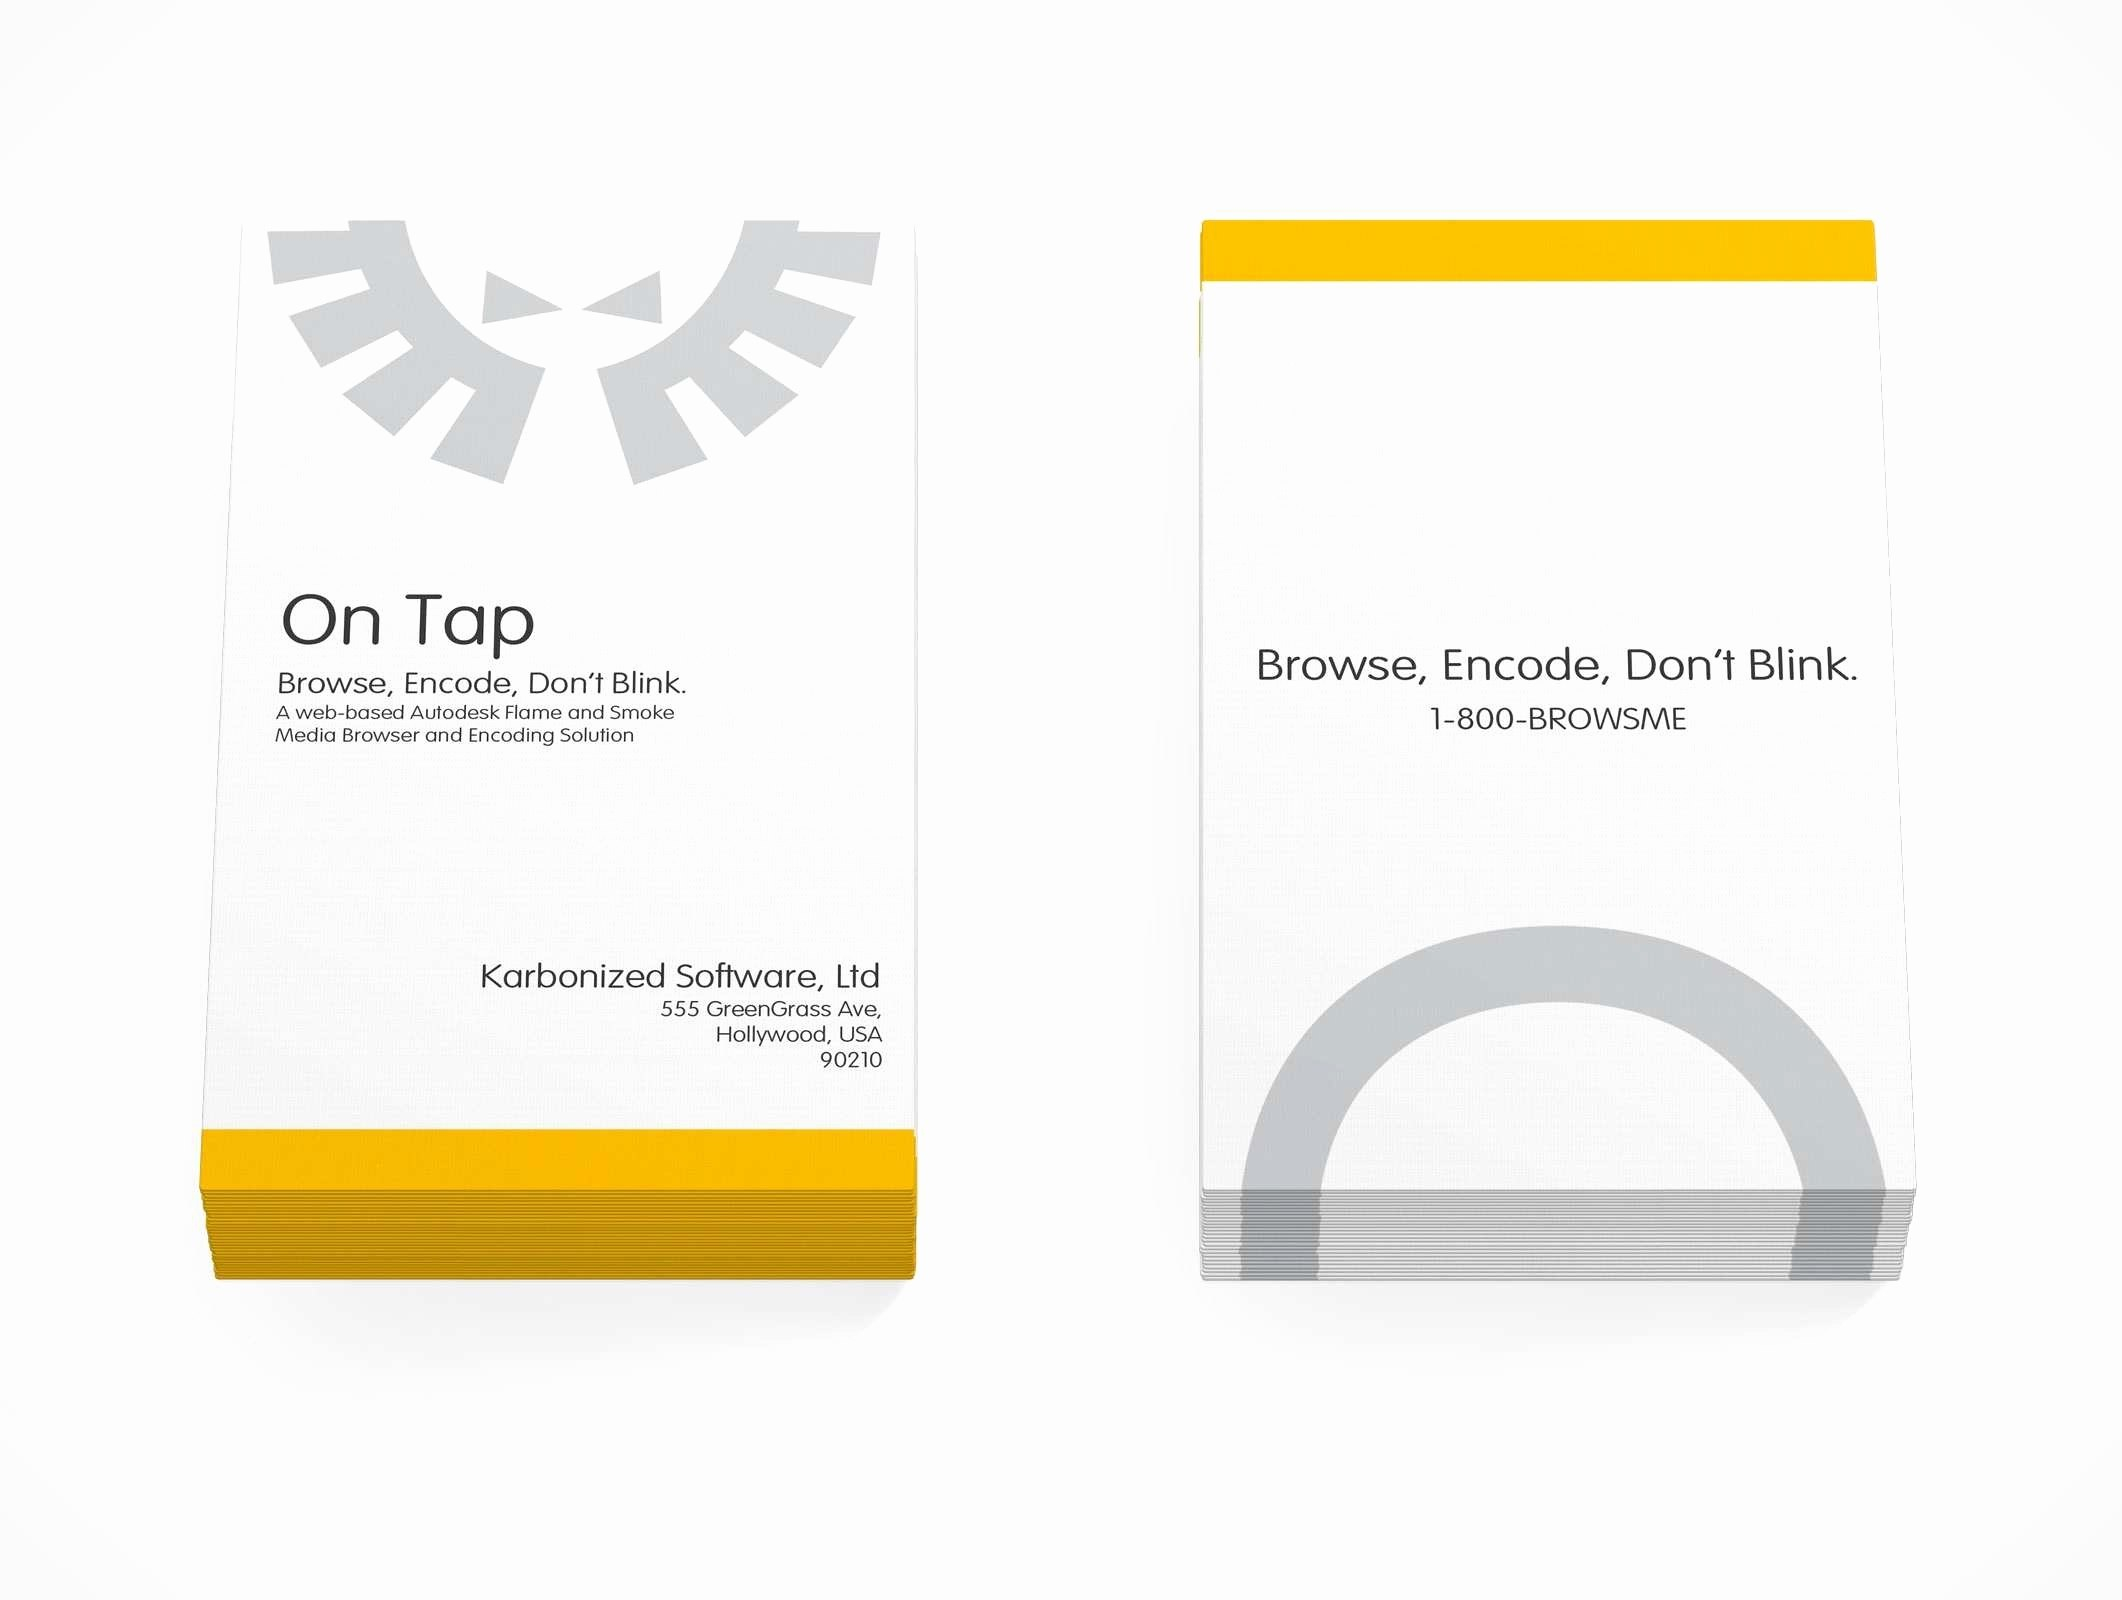 Luxury Ibm Business Card  Hydraexecutives Throughout Ibm Business Card Template